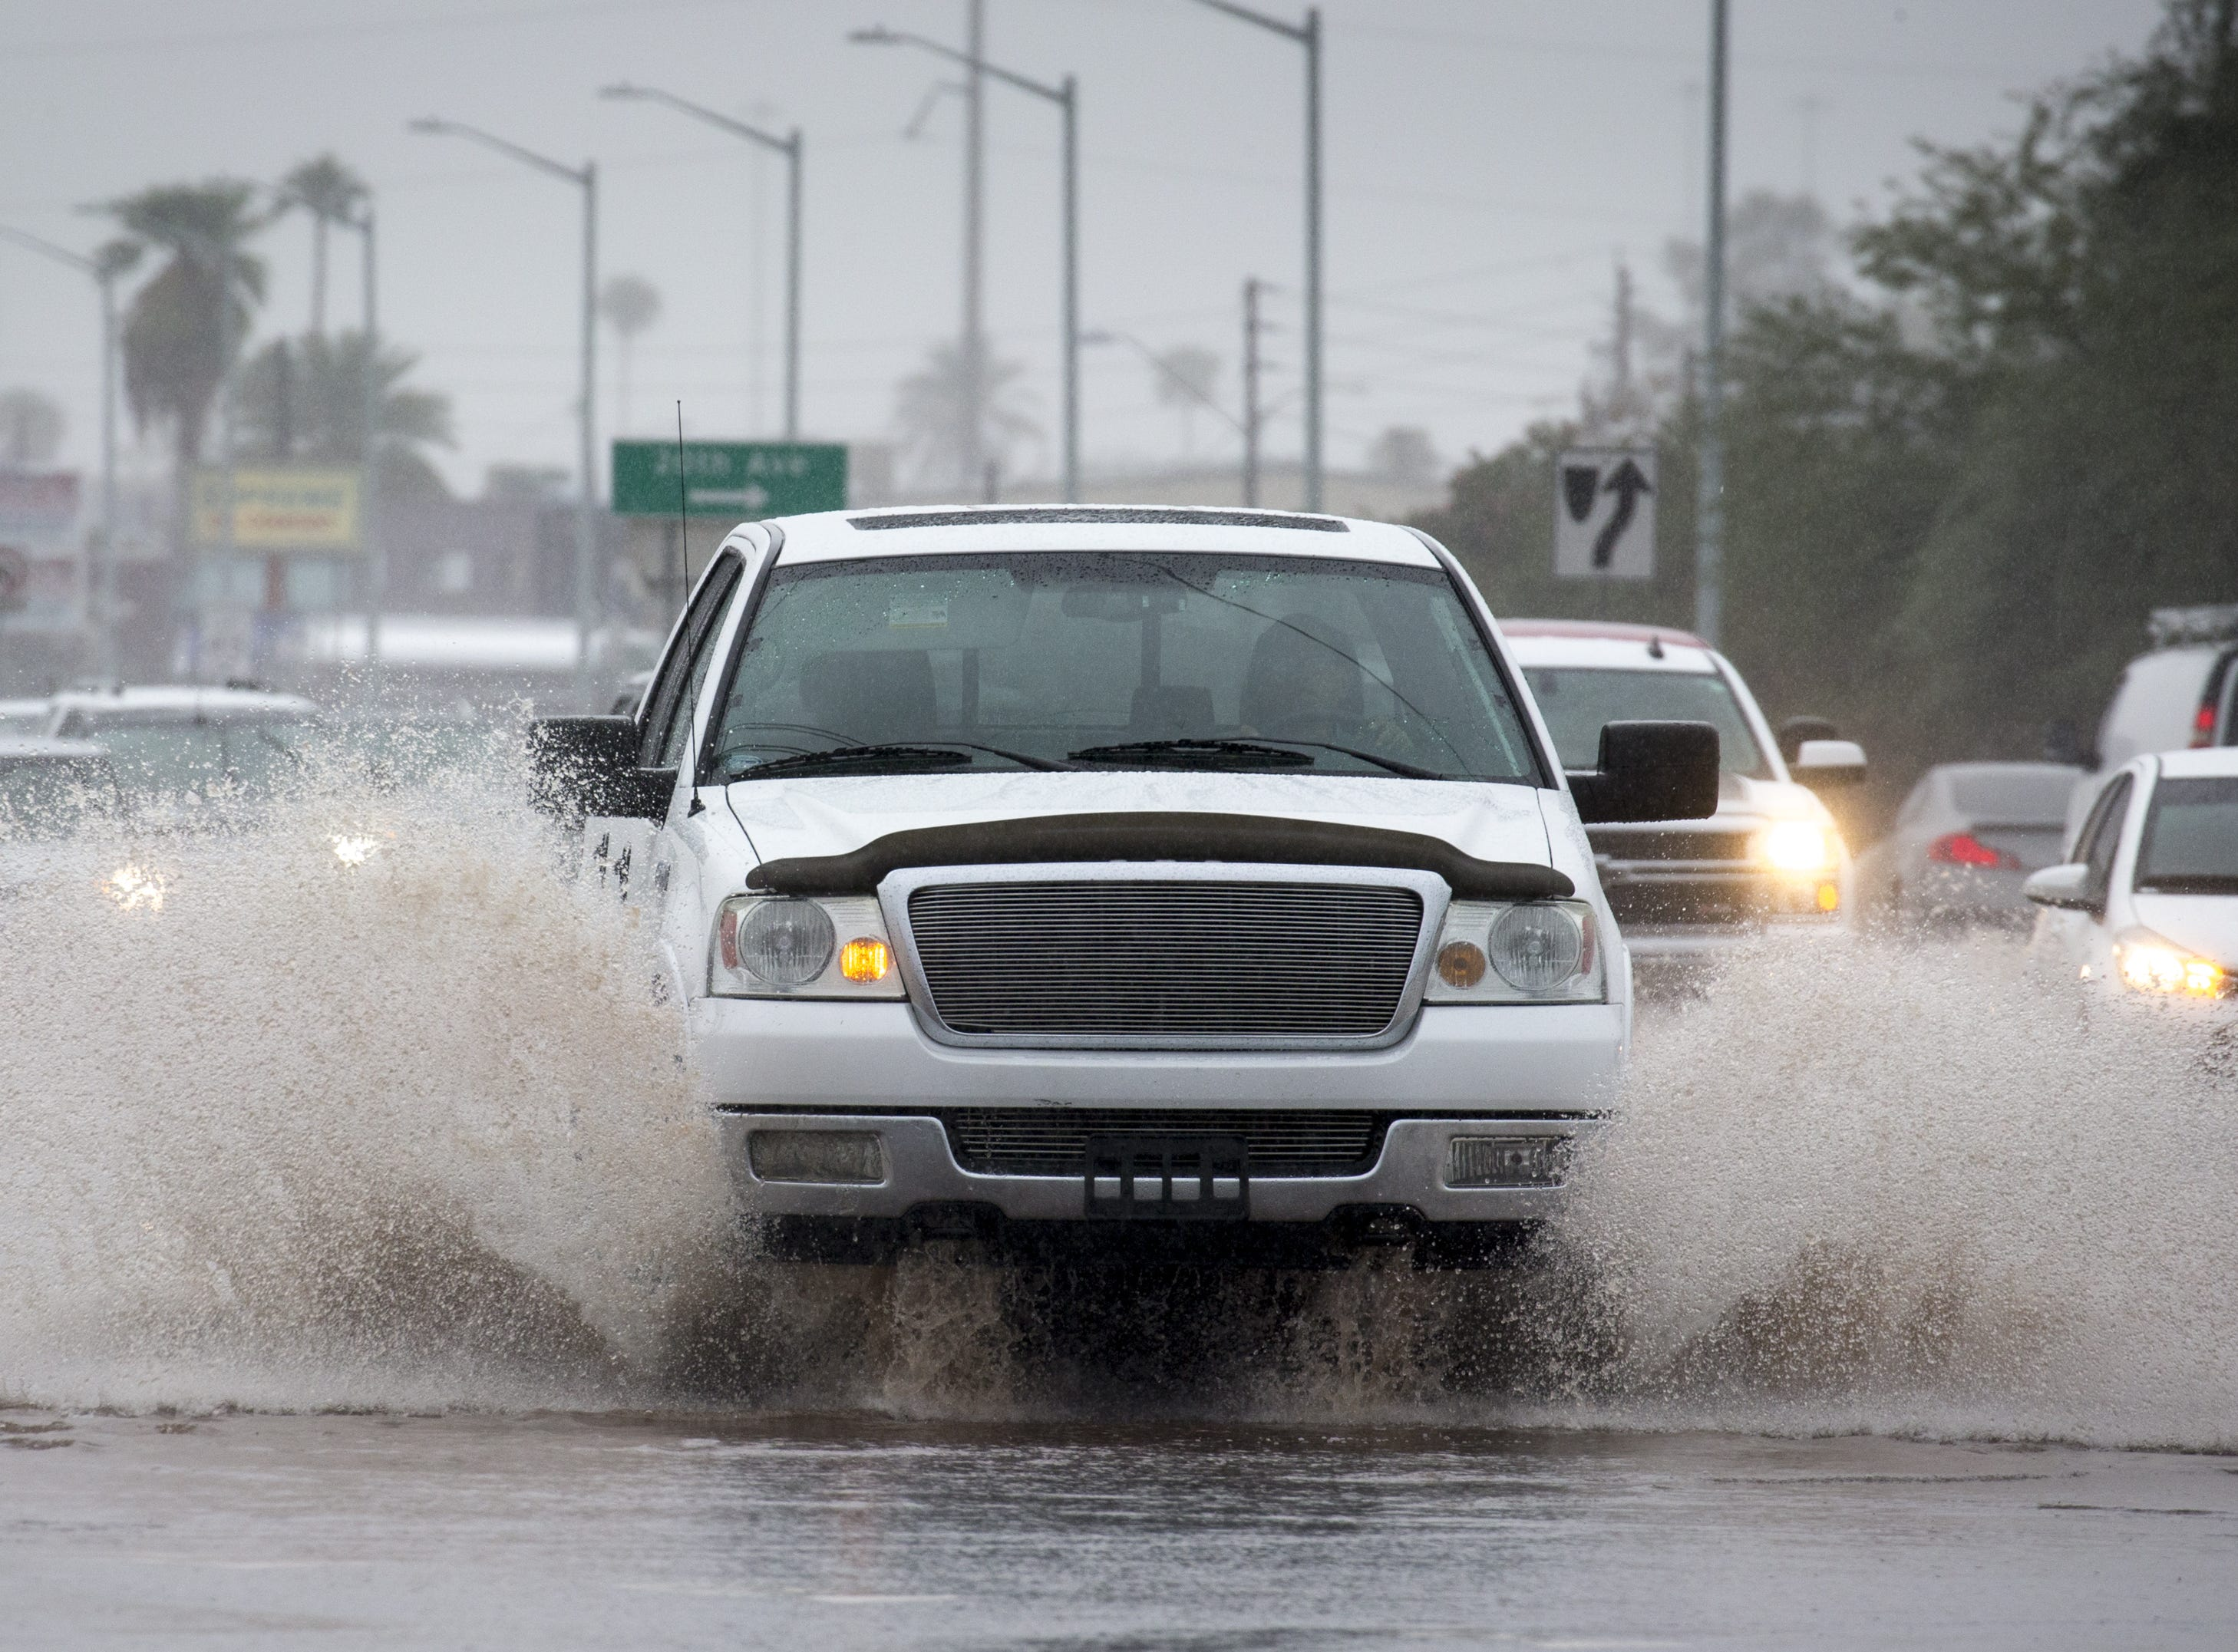 A vehicle on drives through the water on Grand Ave., Oct. 2, 2018, in Phoenix.